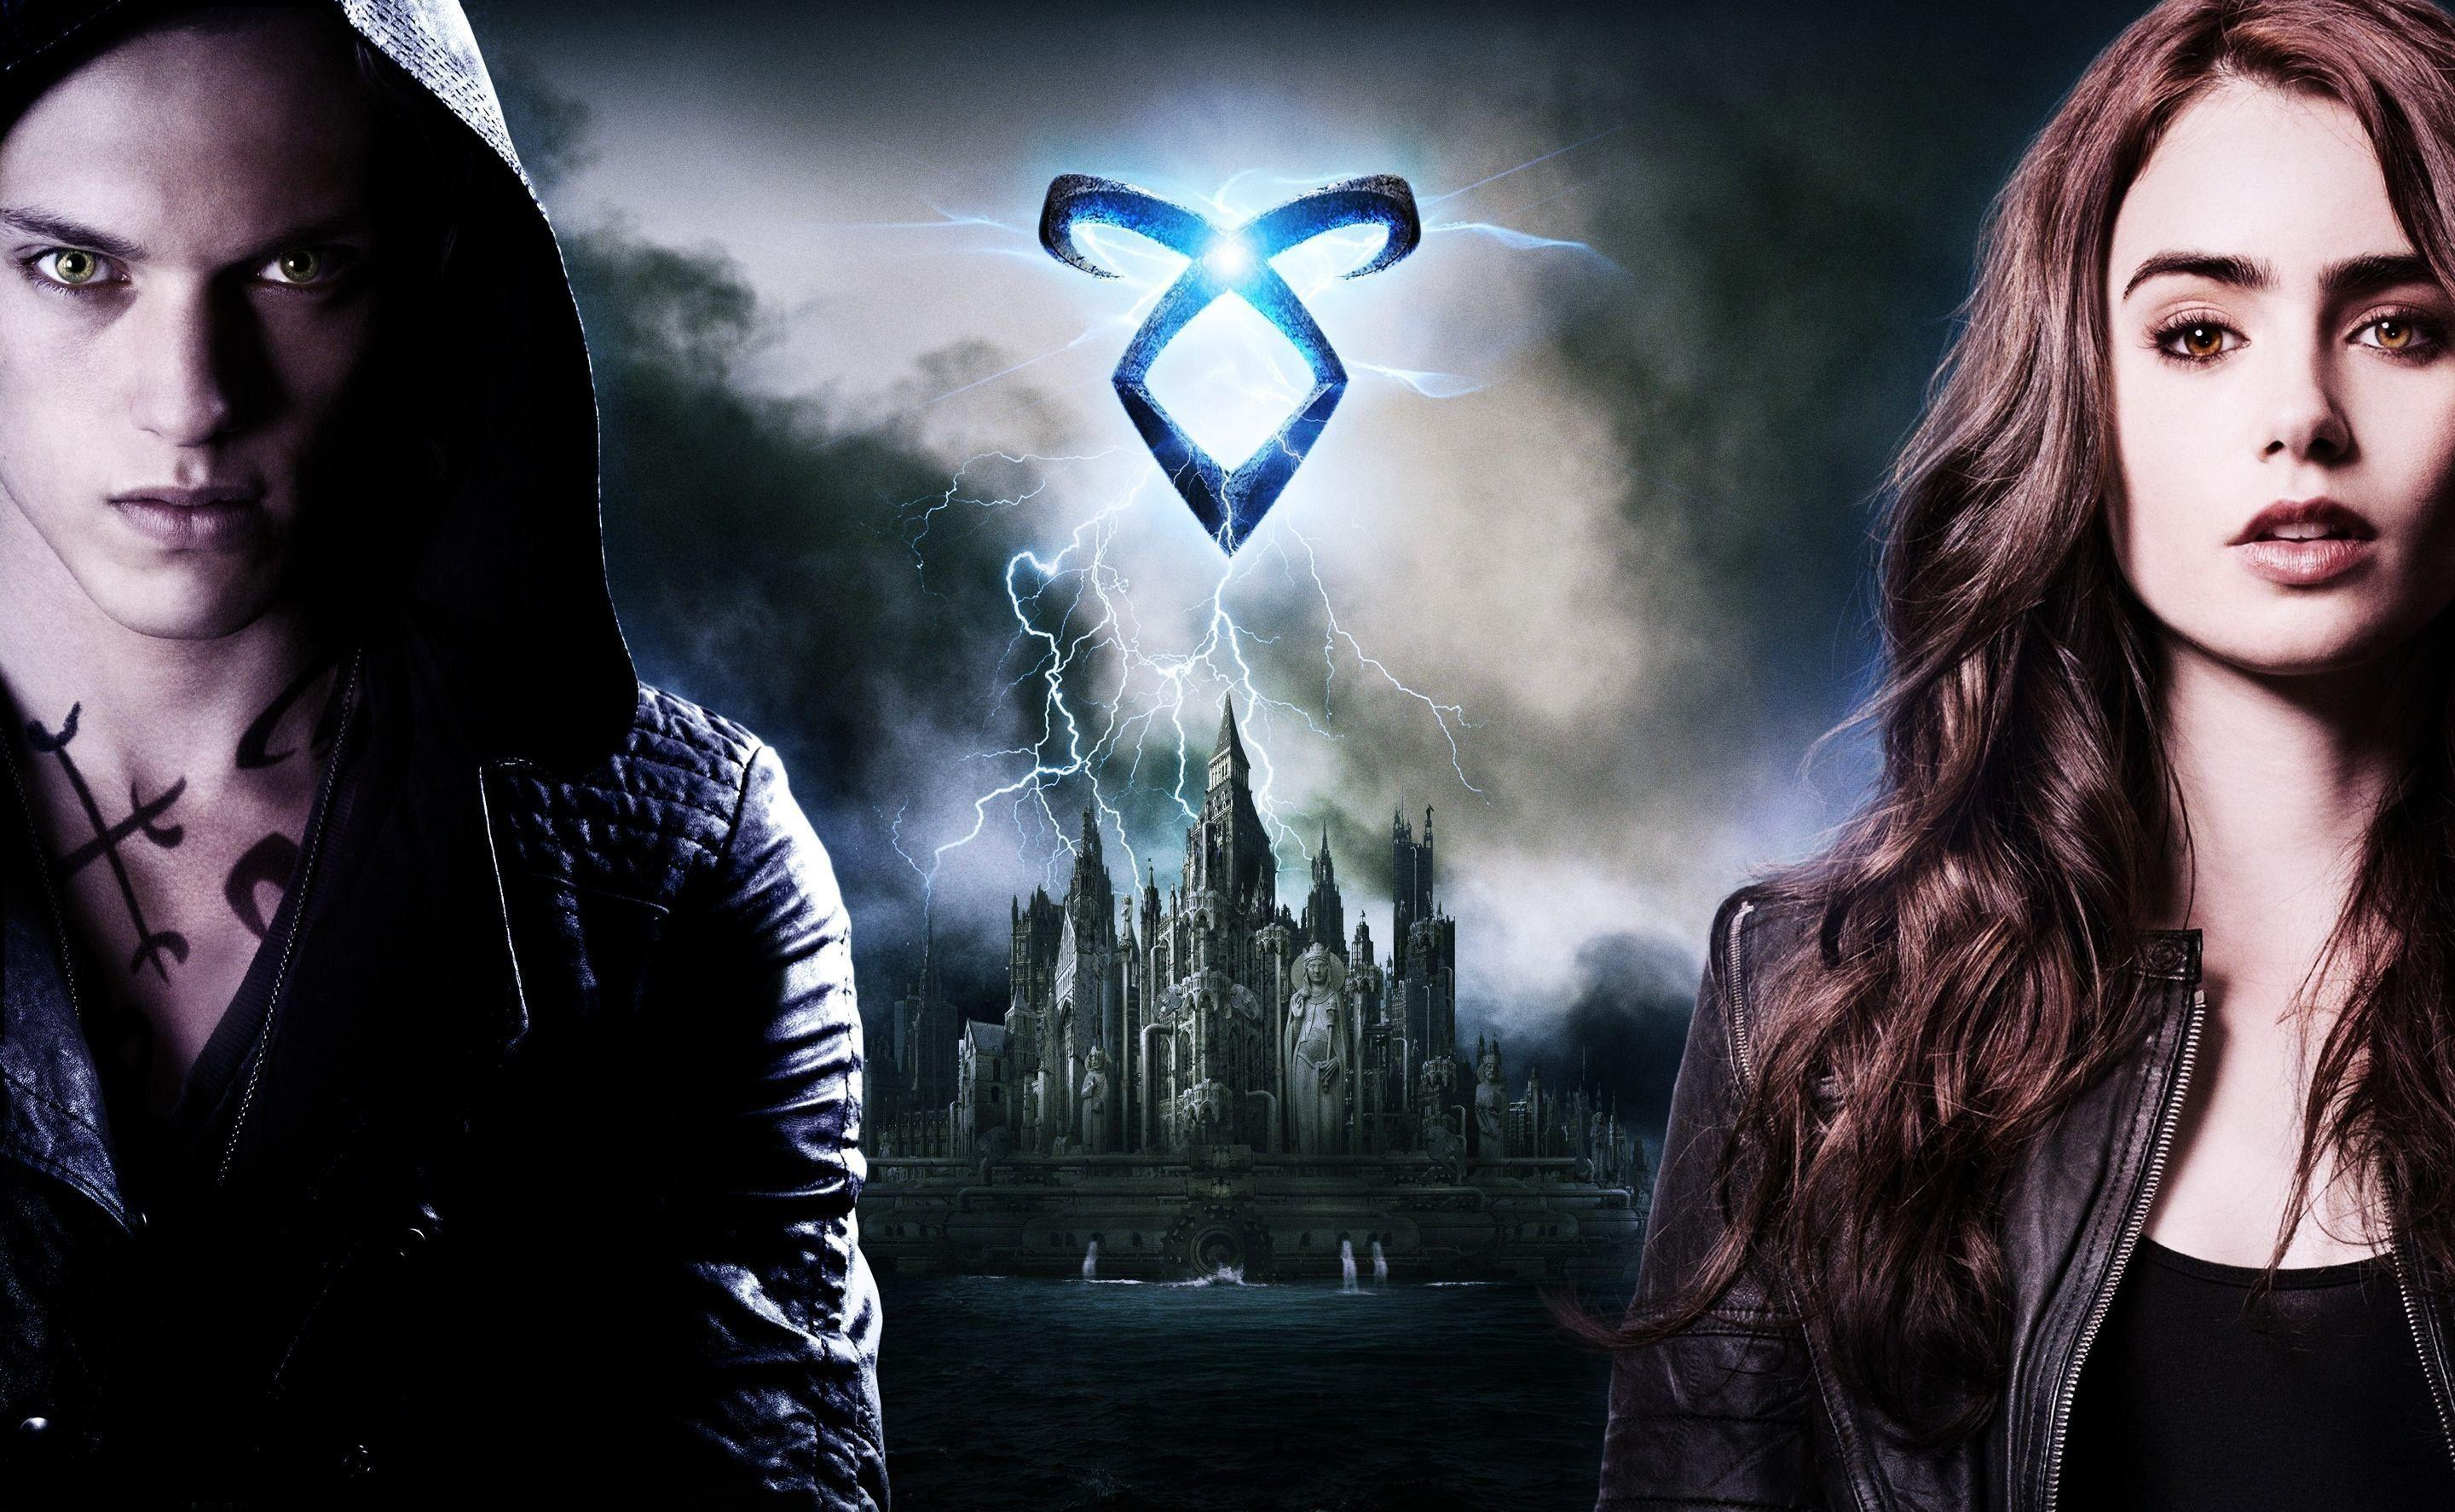 Shadowhunters Libros The Mortal Instruments Wallpapers Wallpaper Cave